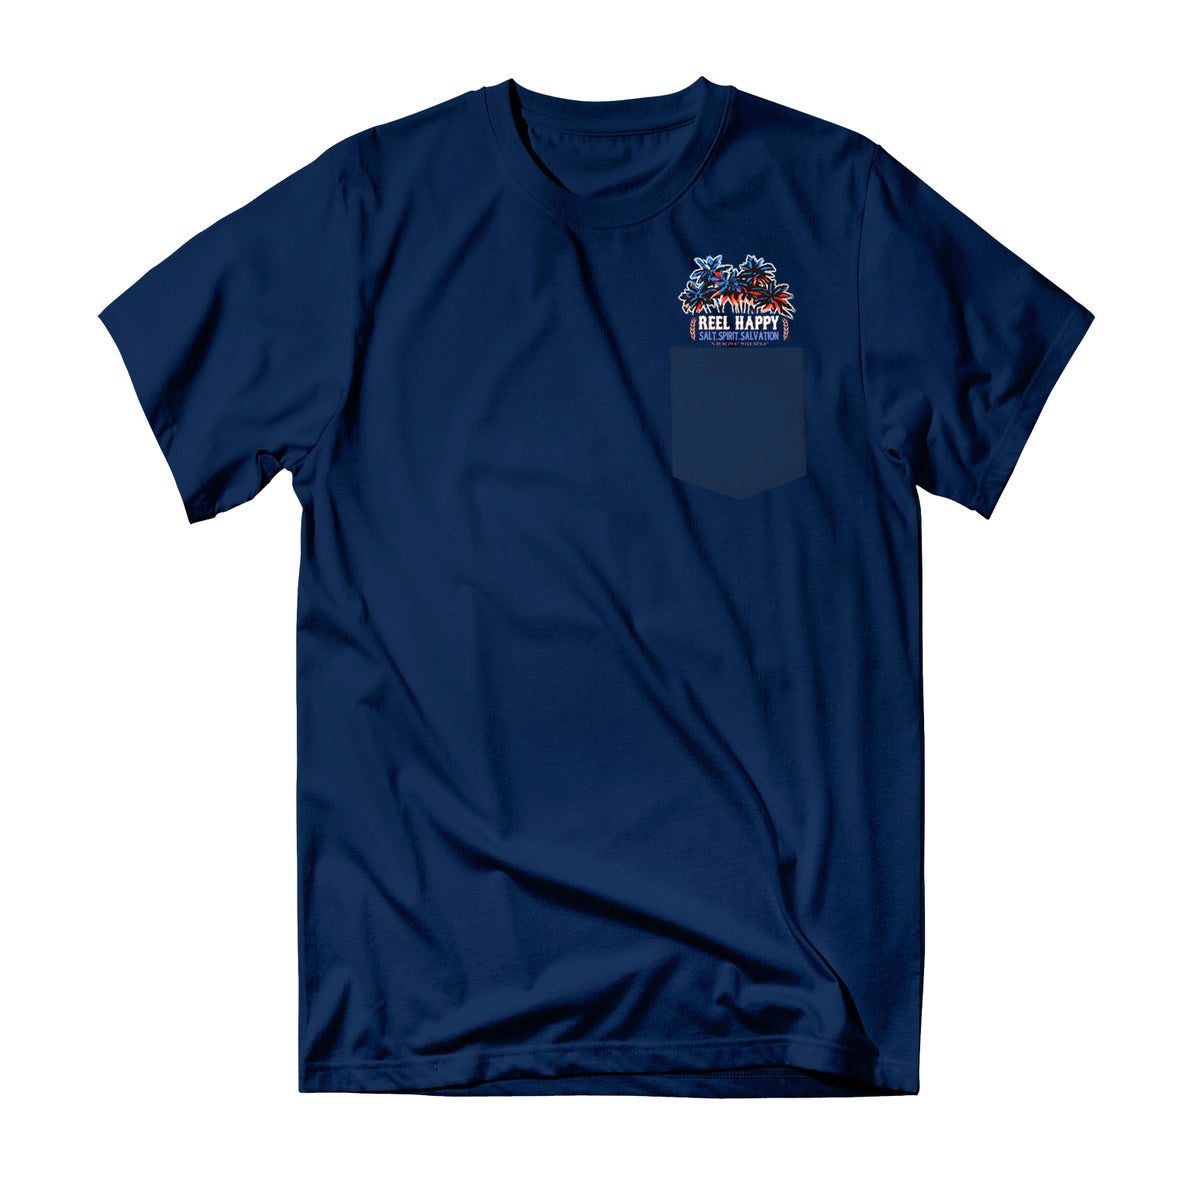 Happy Hour Pocket T-Shirt - Navy - Reel Happy Co